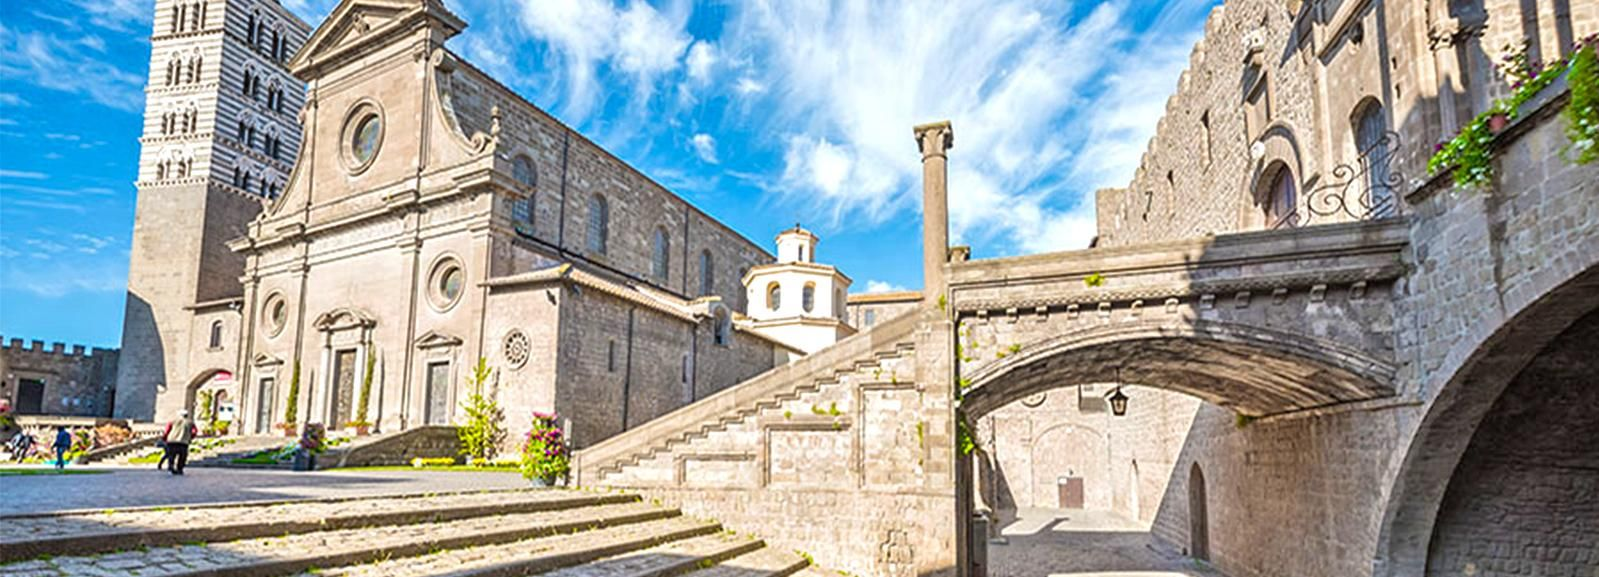 Viterbo Guided Tour with Cathedral & Priori Palace Entrance